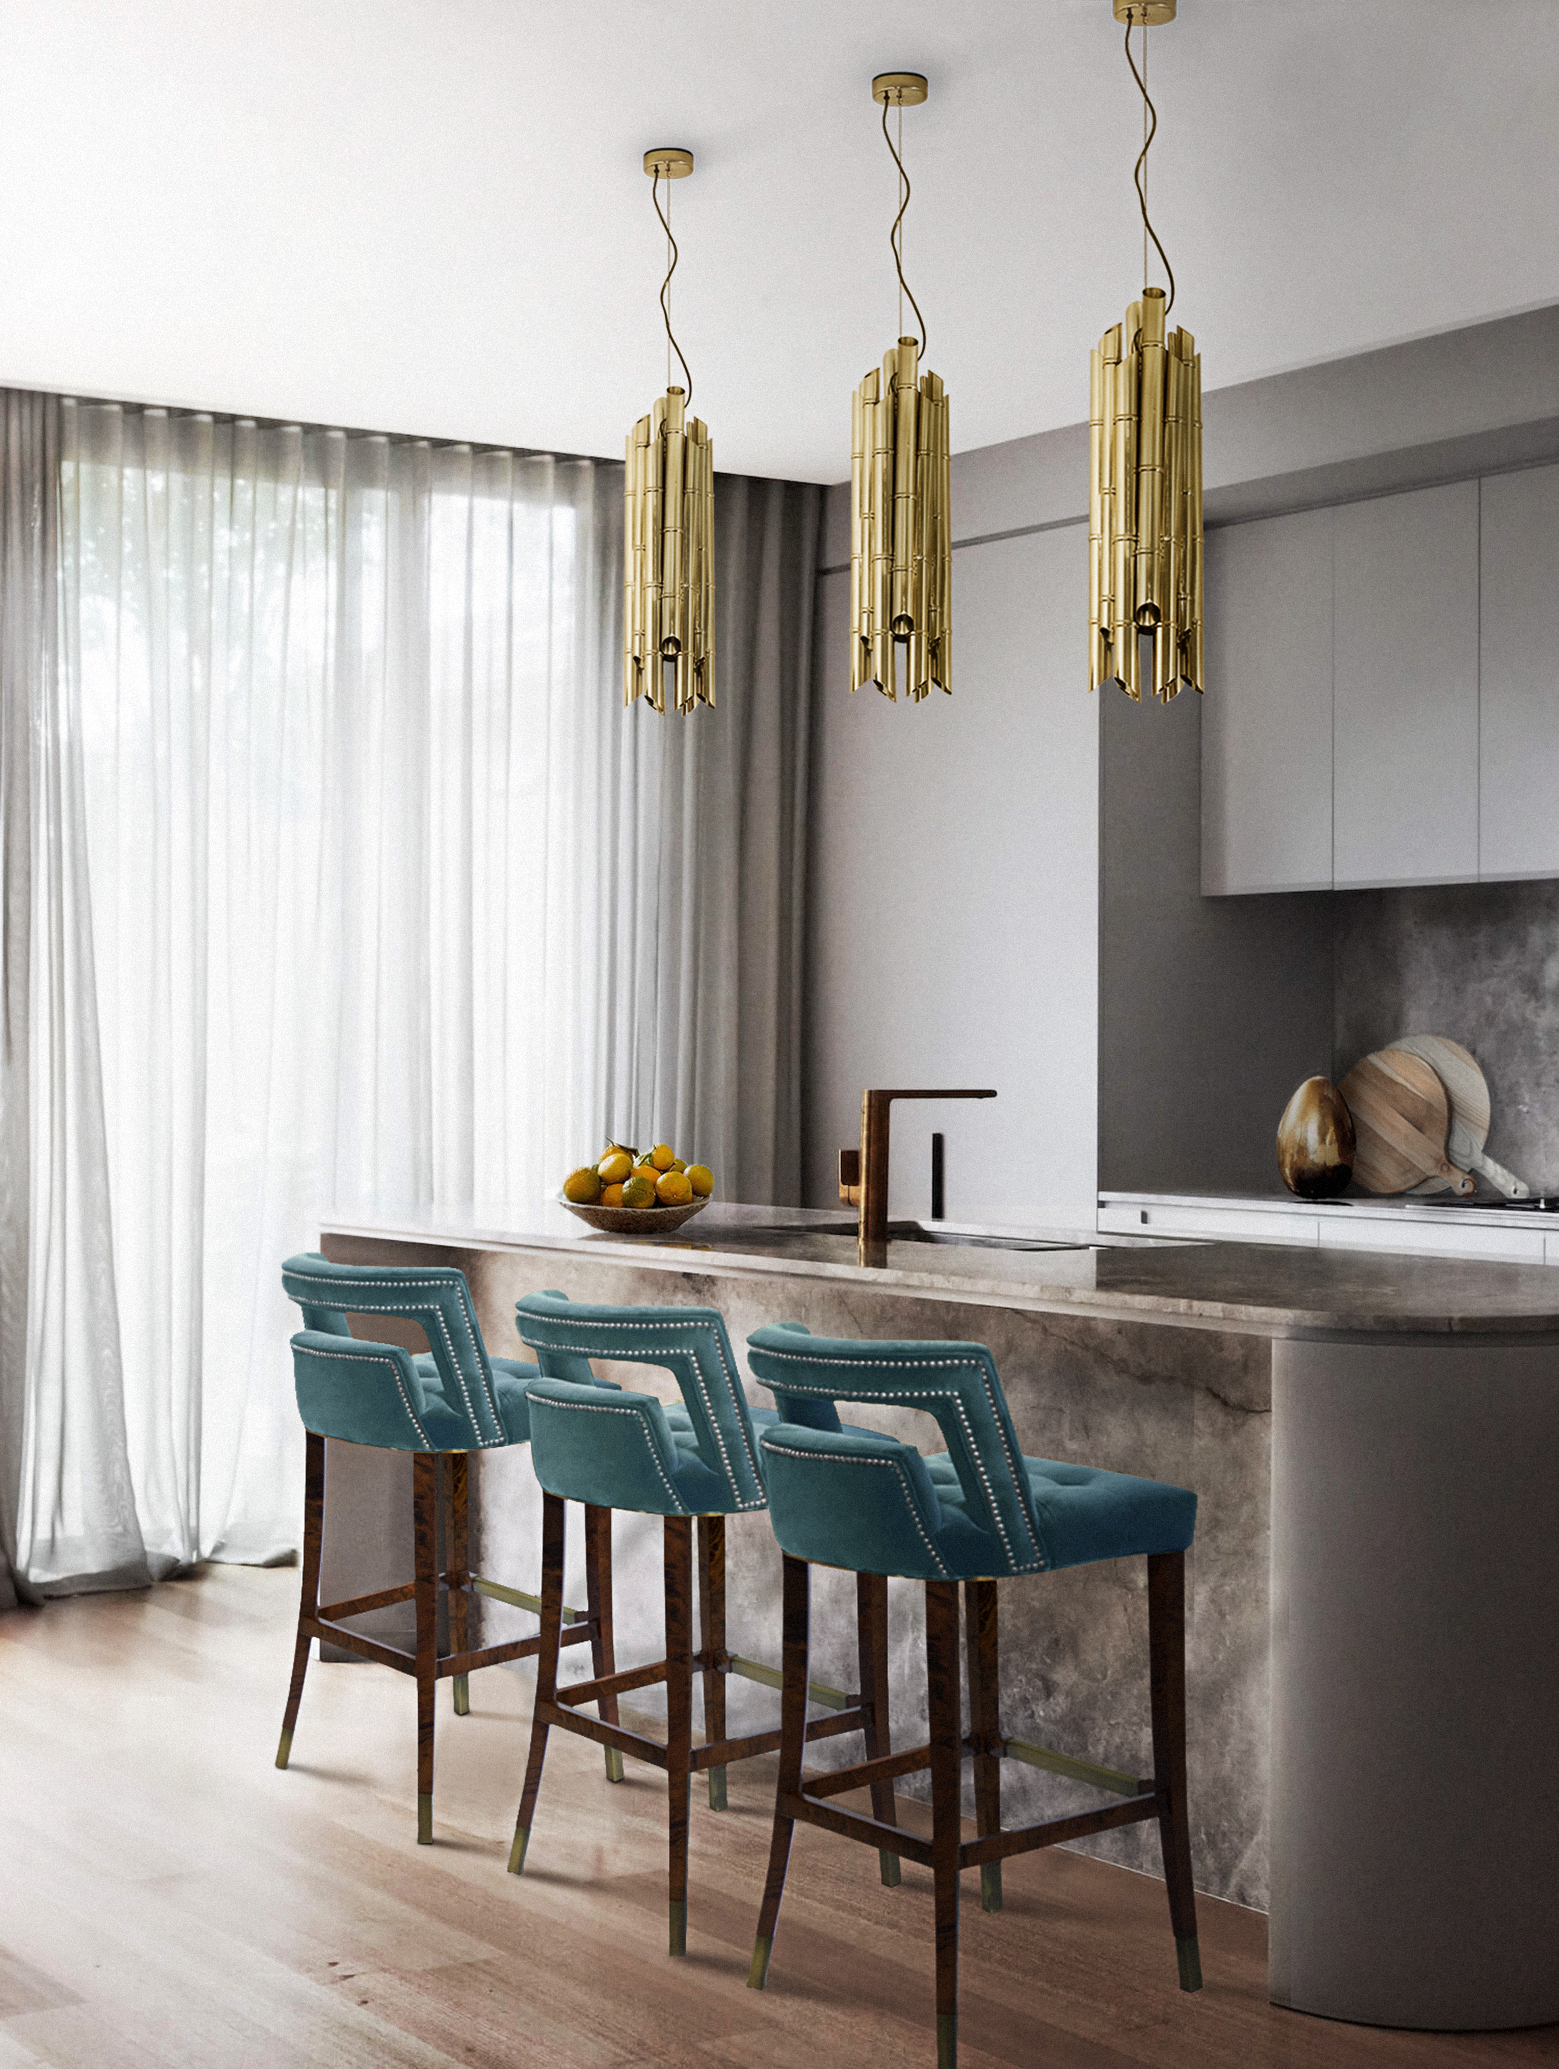 20 Counter Stools To Help You Create Your Dream Kitchen counter stools 20 Counter Stools To Help You Create Your Dream Kitchen Naj barchair Saki pendant